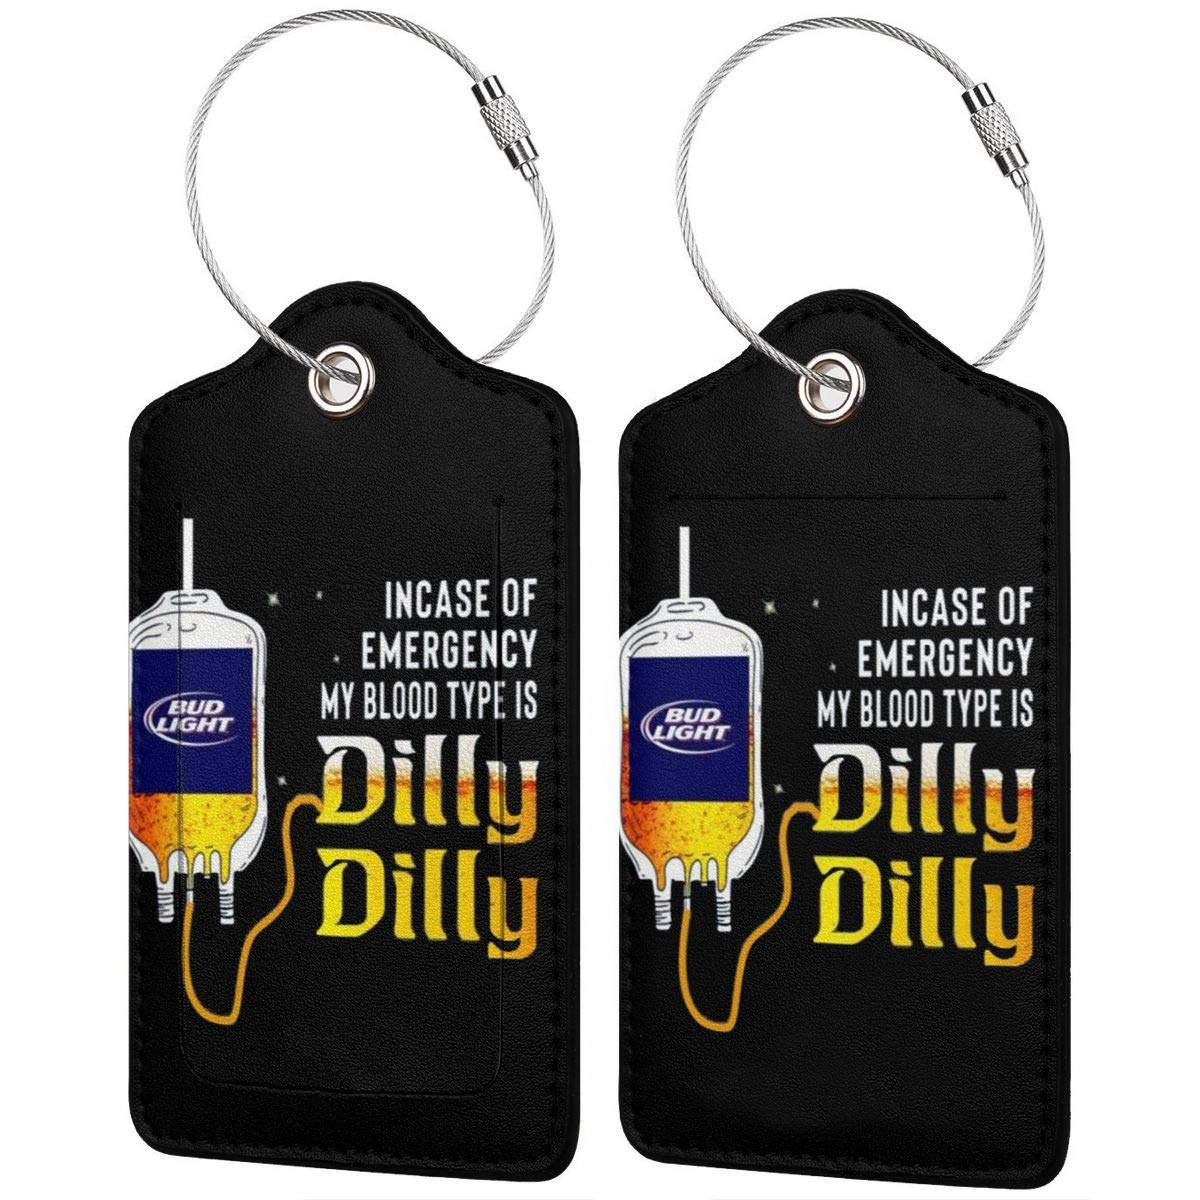 4 Kinds Of Specifications Bud Light Incase-of Emergency-My Blood-Type Is Dilly Dilly Printed?Leather Luggage Tag /& Bag Tag With Privacy Cover